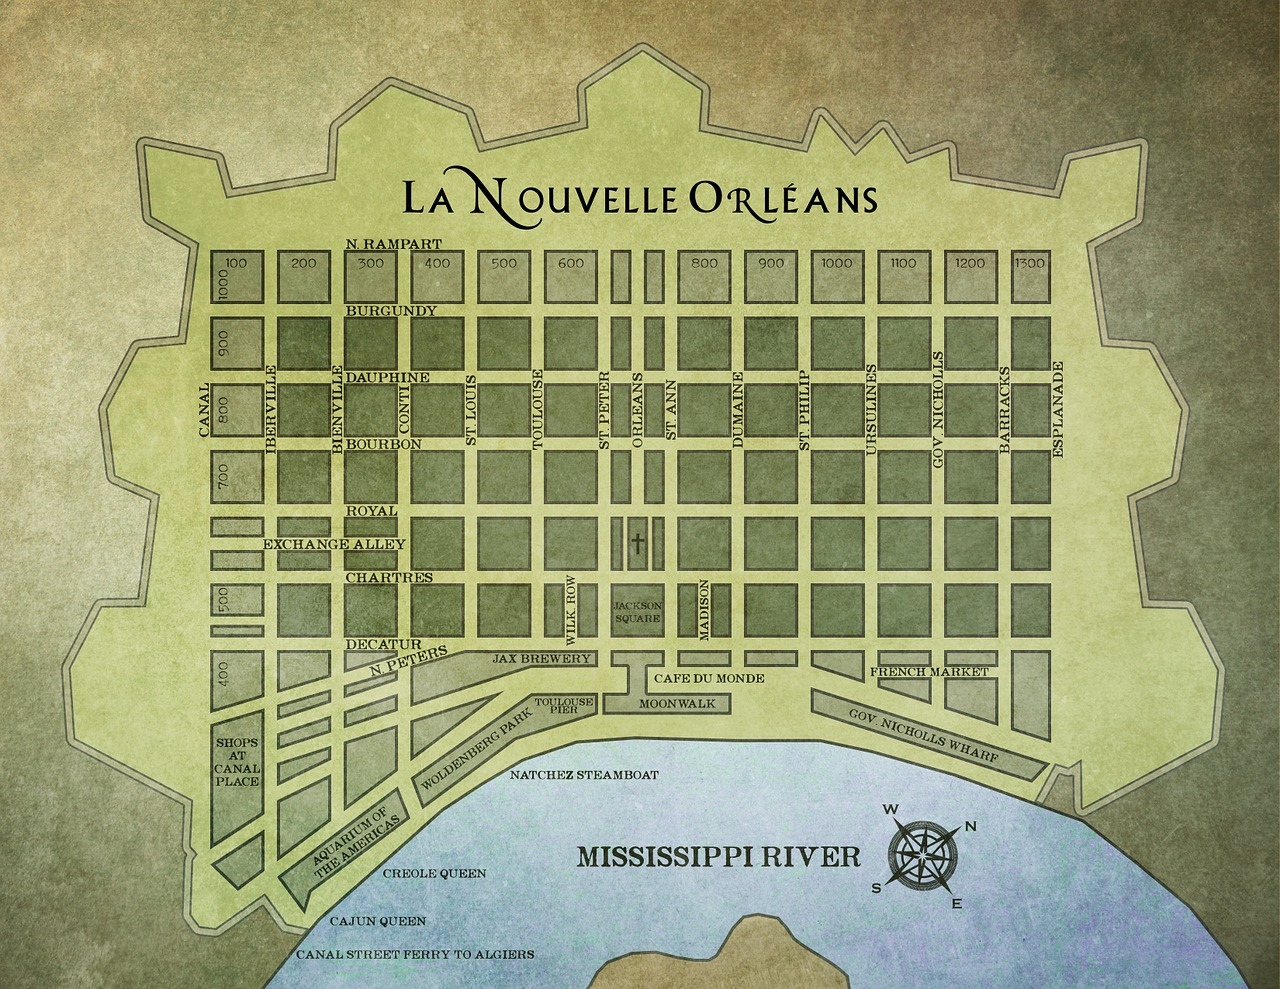 French quarter,louisiana,new orleans,map,free pictures ... on louisiana map, battle of new orleans map, new orleans hotel map, new orleans downtown map, new orleans aquarium, new orleans weather, sedona map, new orleans parking map, utah map, new orleans streetcar routes, french quarter walking map, new orleans maps with landmarks, new orleans ghosts, new orleans city park, new orleans districts, marigny new orleans map, new orleans city map, new orleans louisiana, french quarter hotel map, french quarter interactive map,